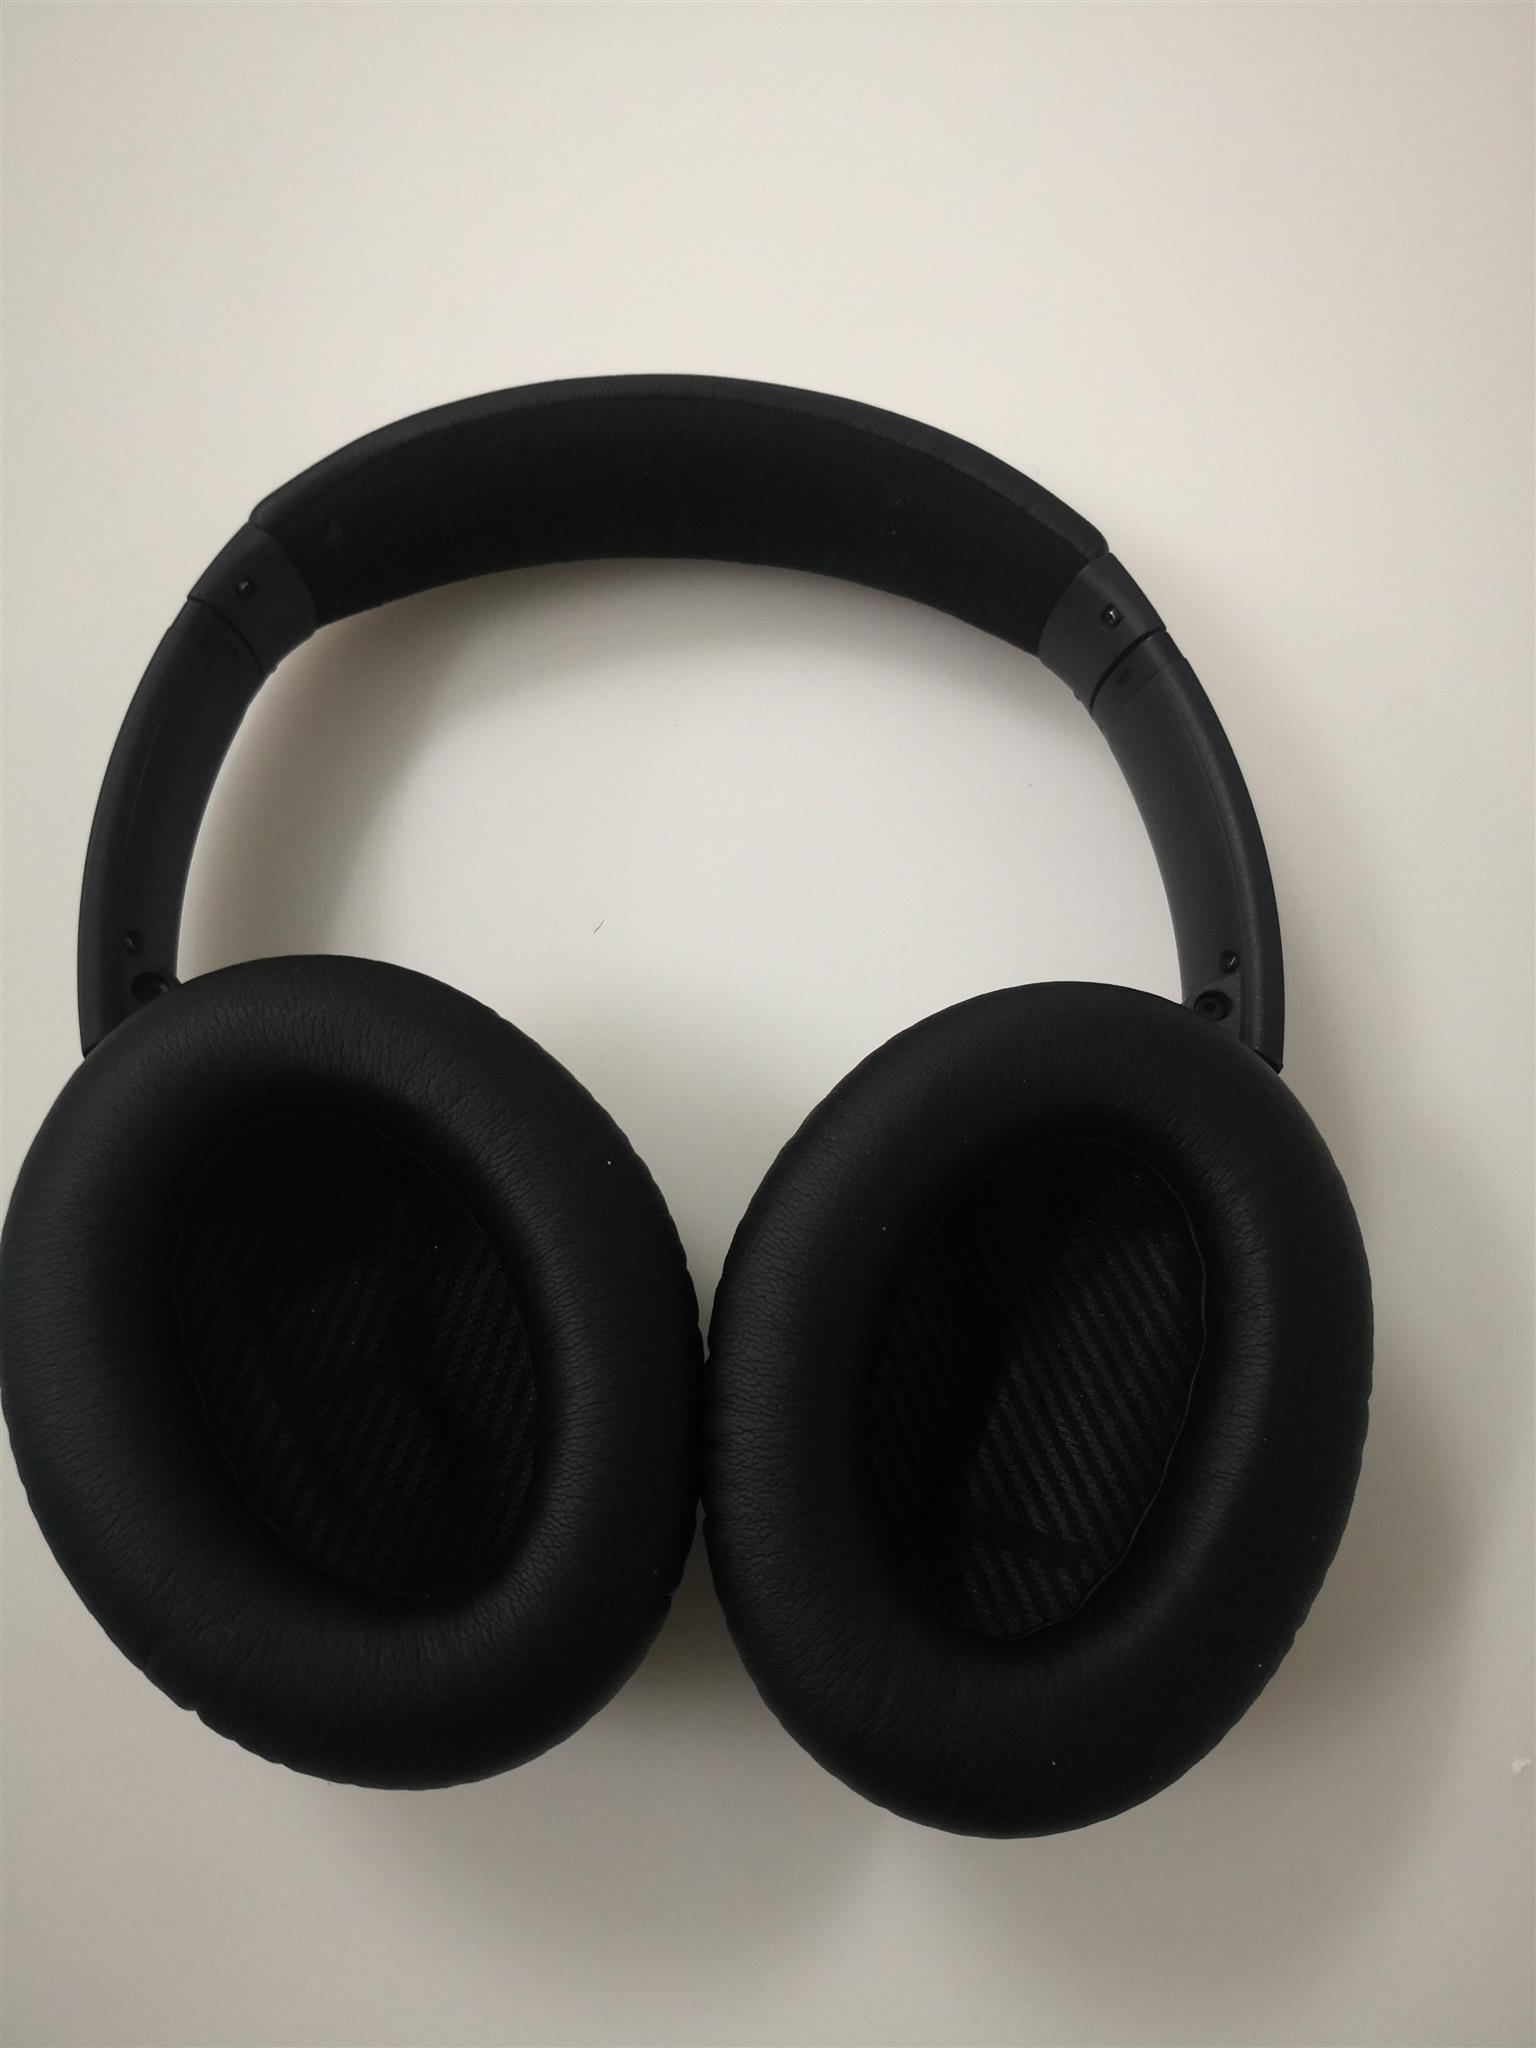 Bose Headphones for sale